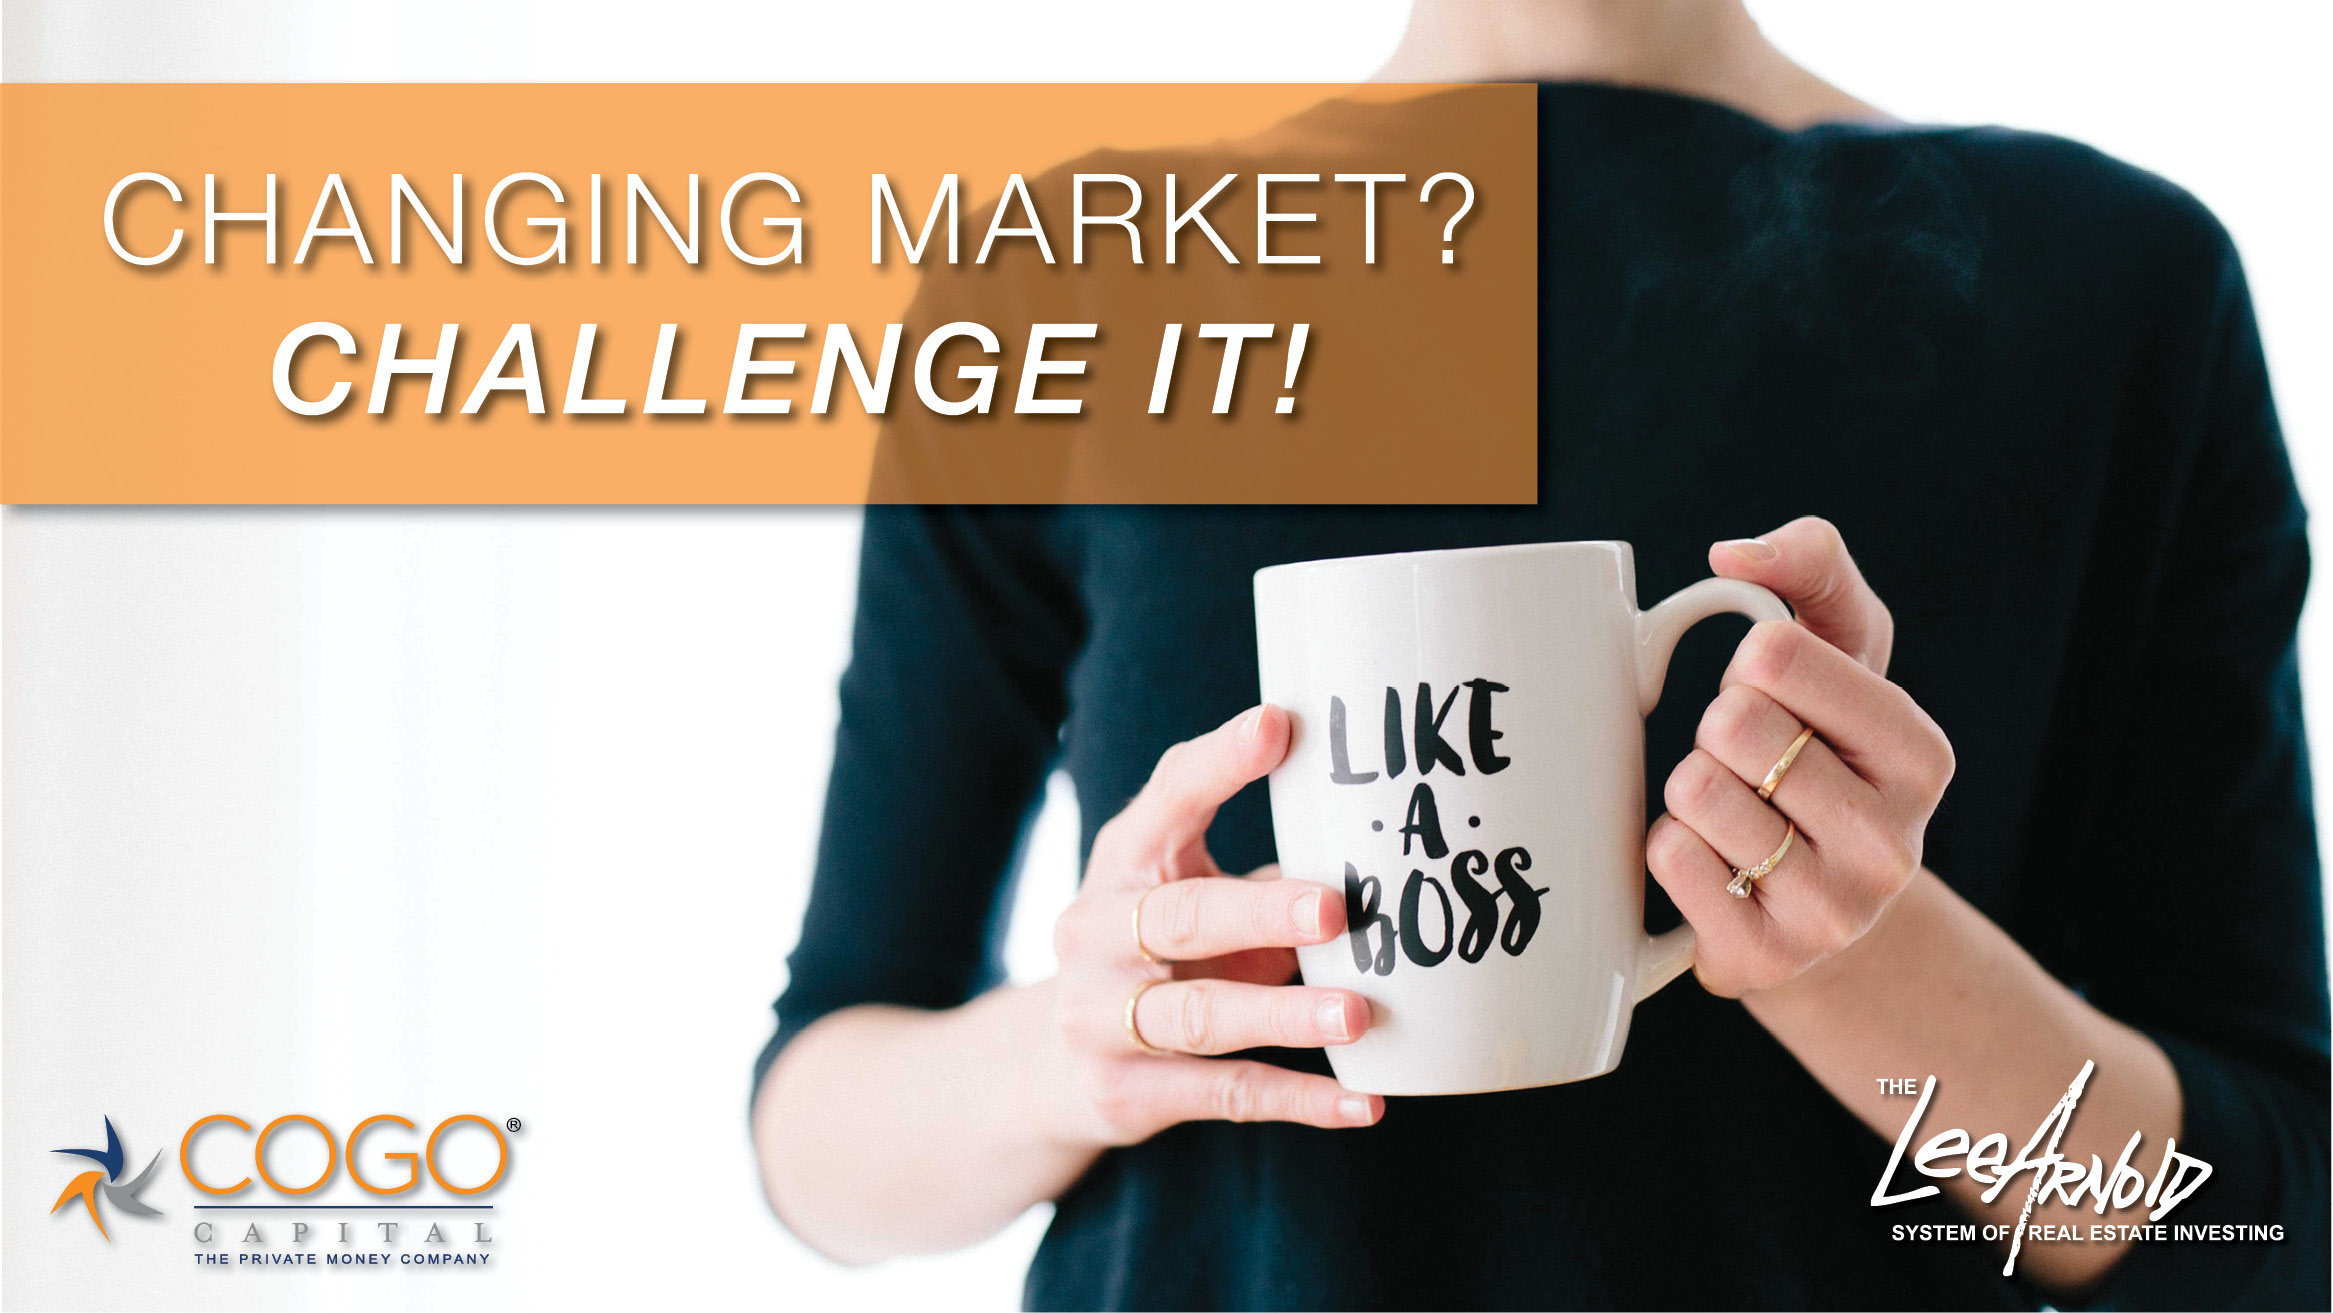 Changing Market? Challenge It!